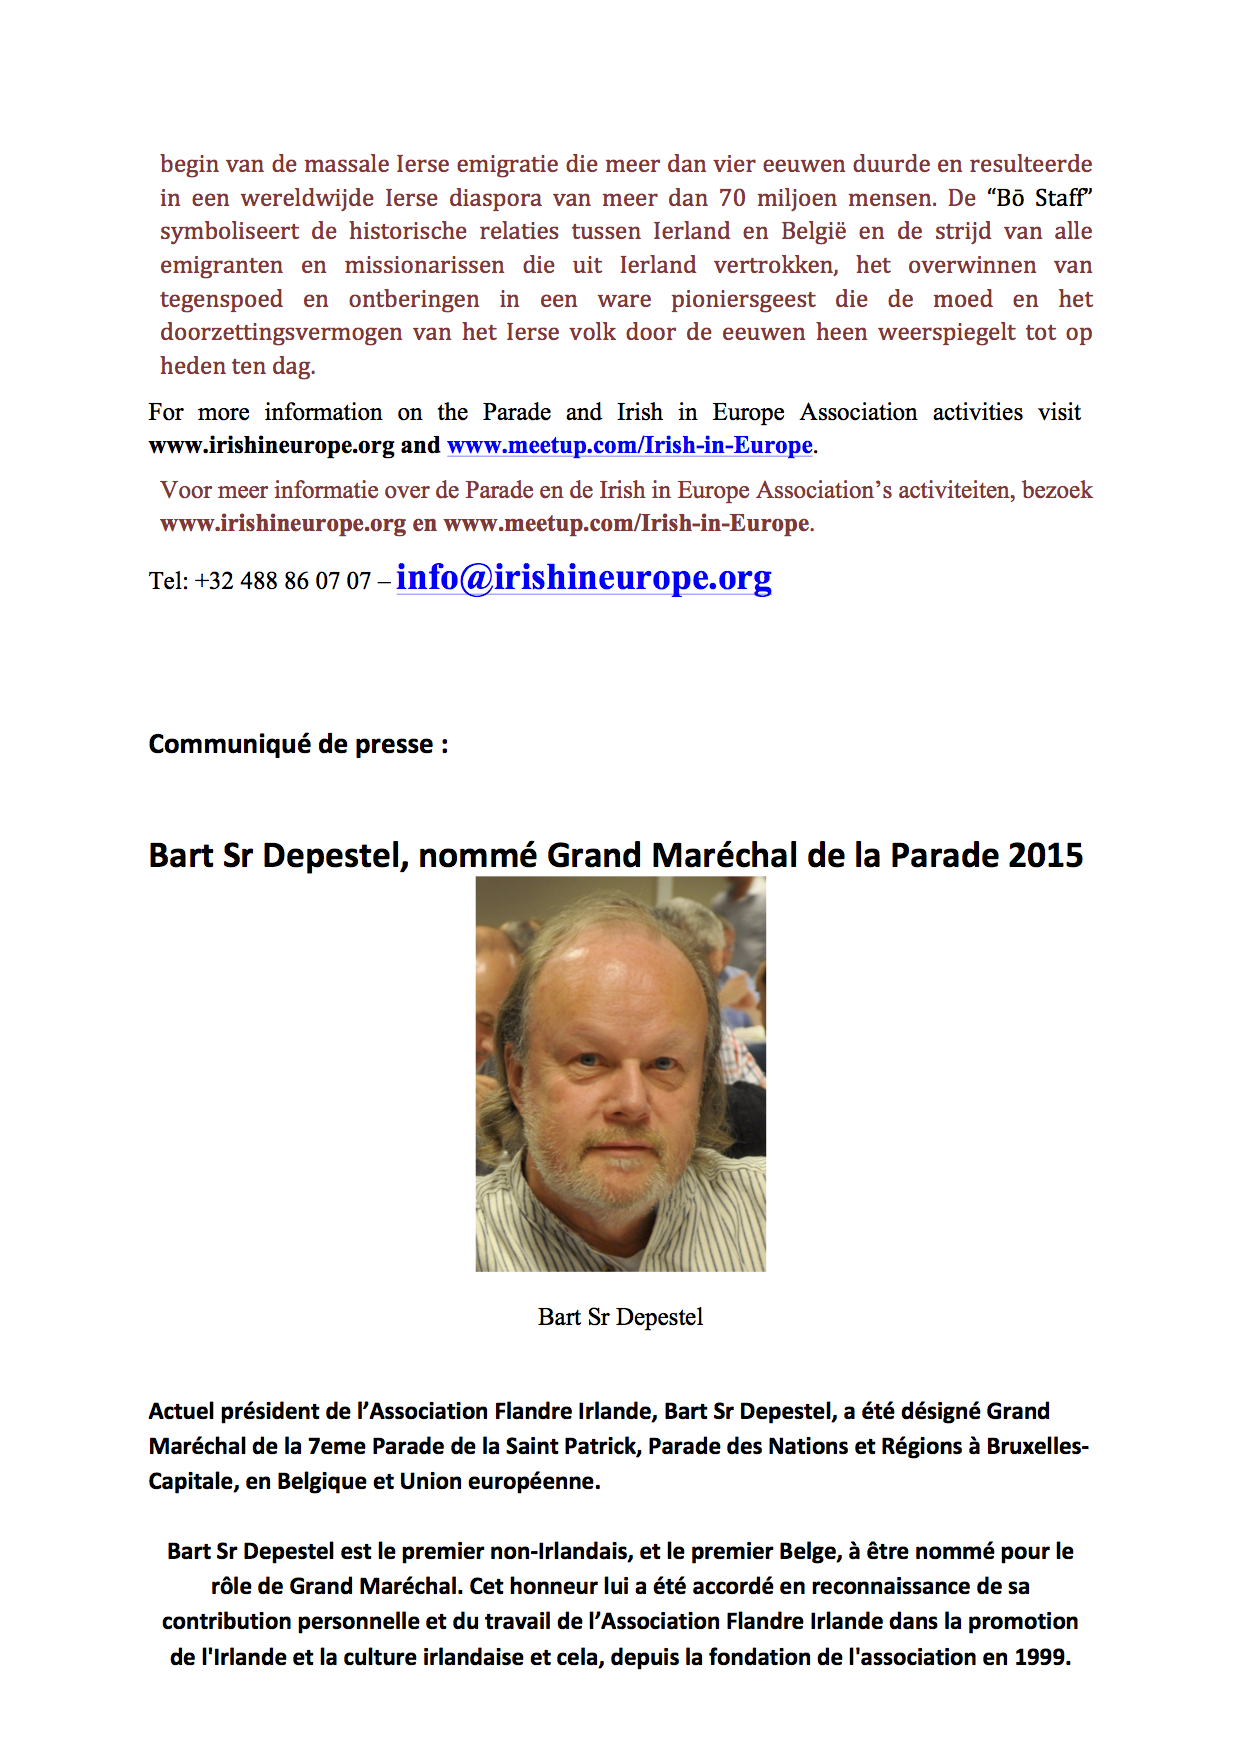 Announcement of Parade Grand Marshal Eng_Nl_Fr6